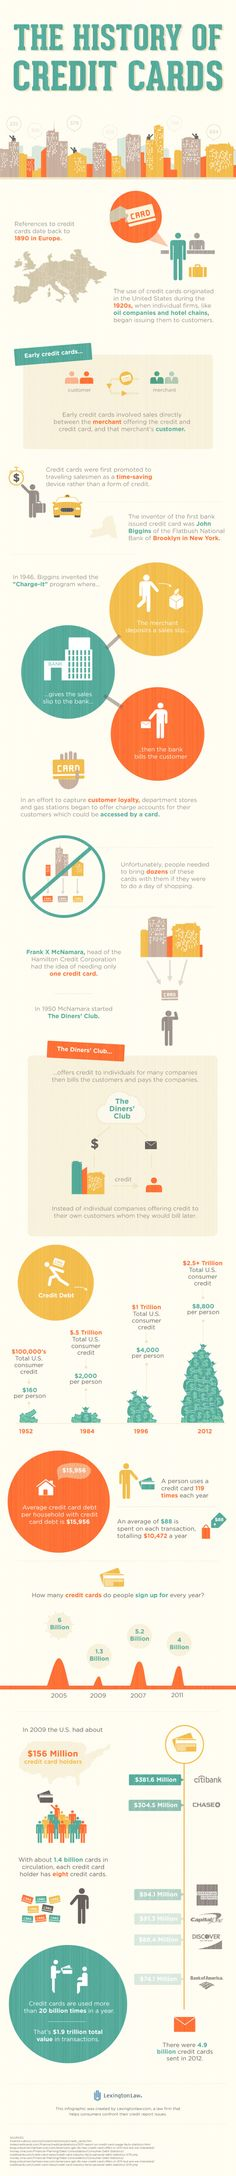 The history of credit cards #infografia #infographic